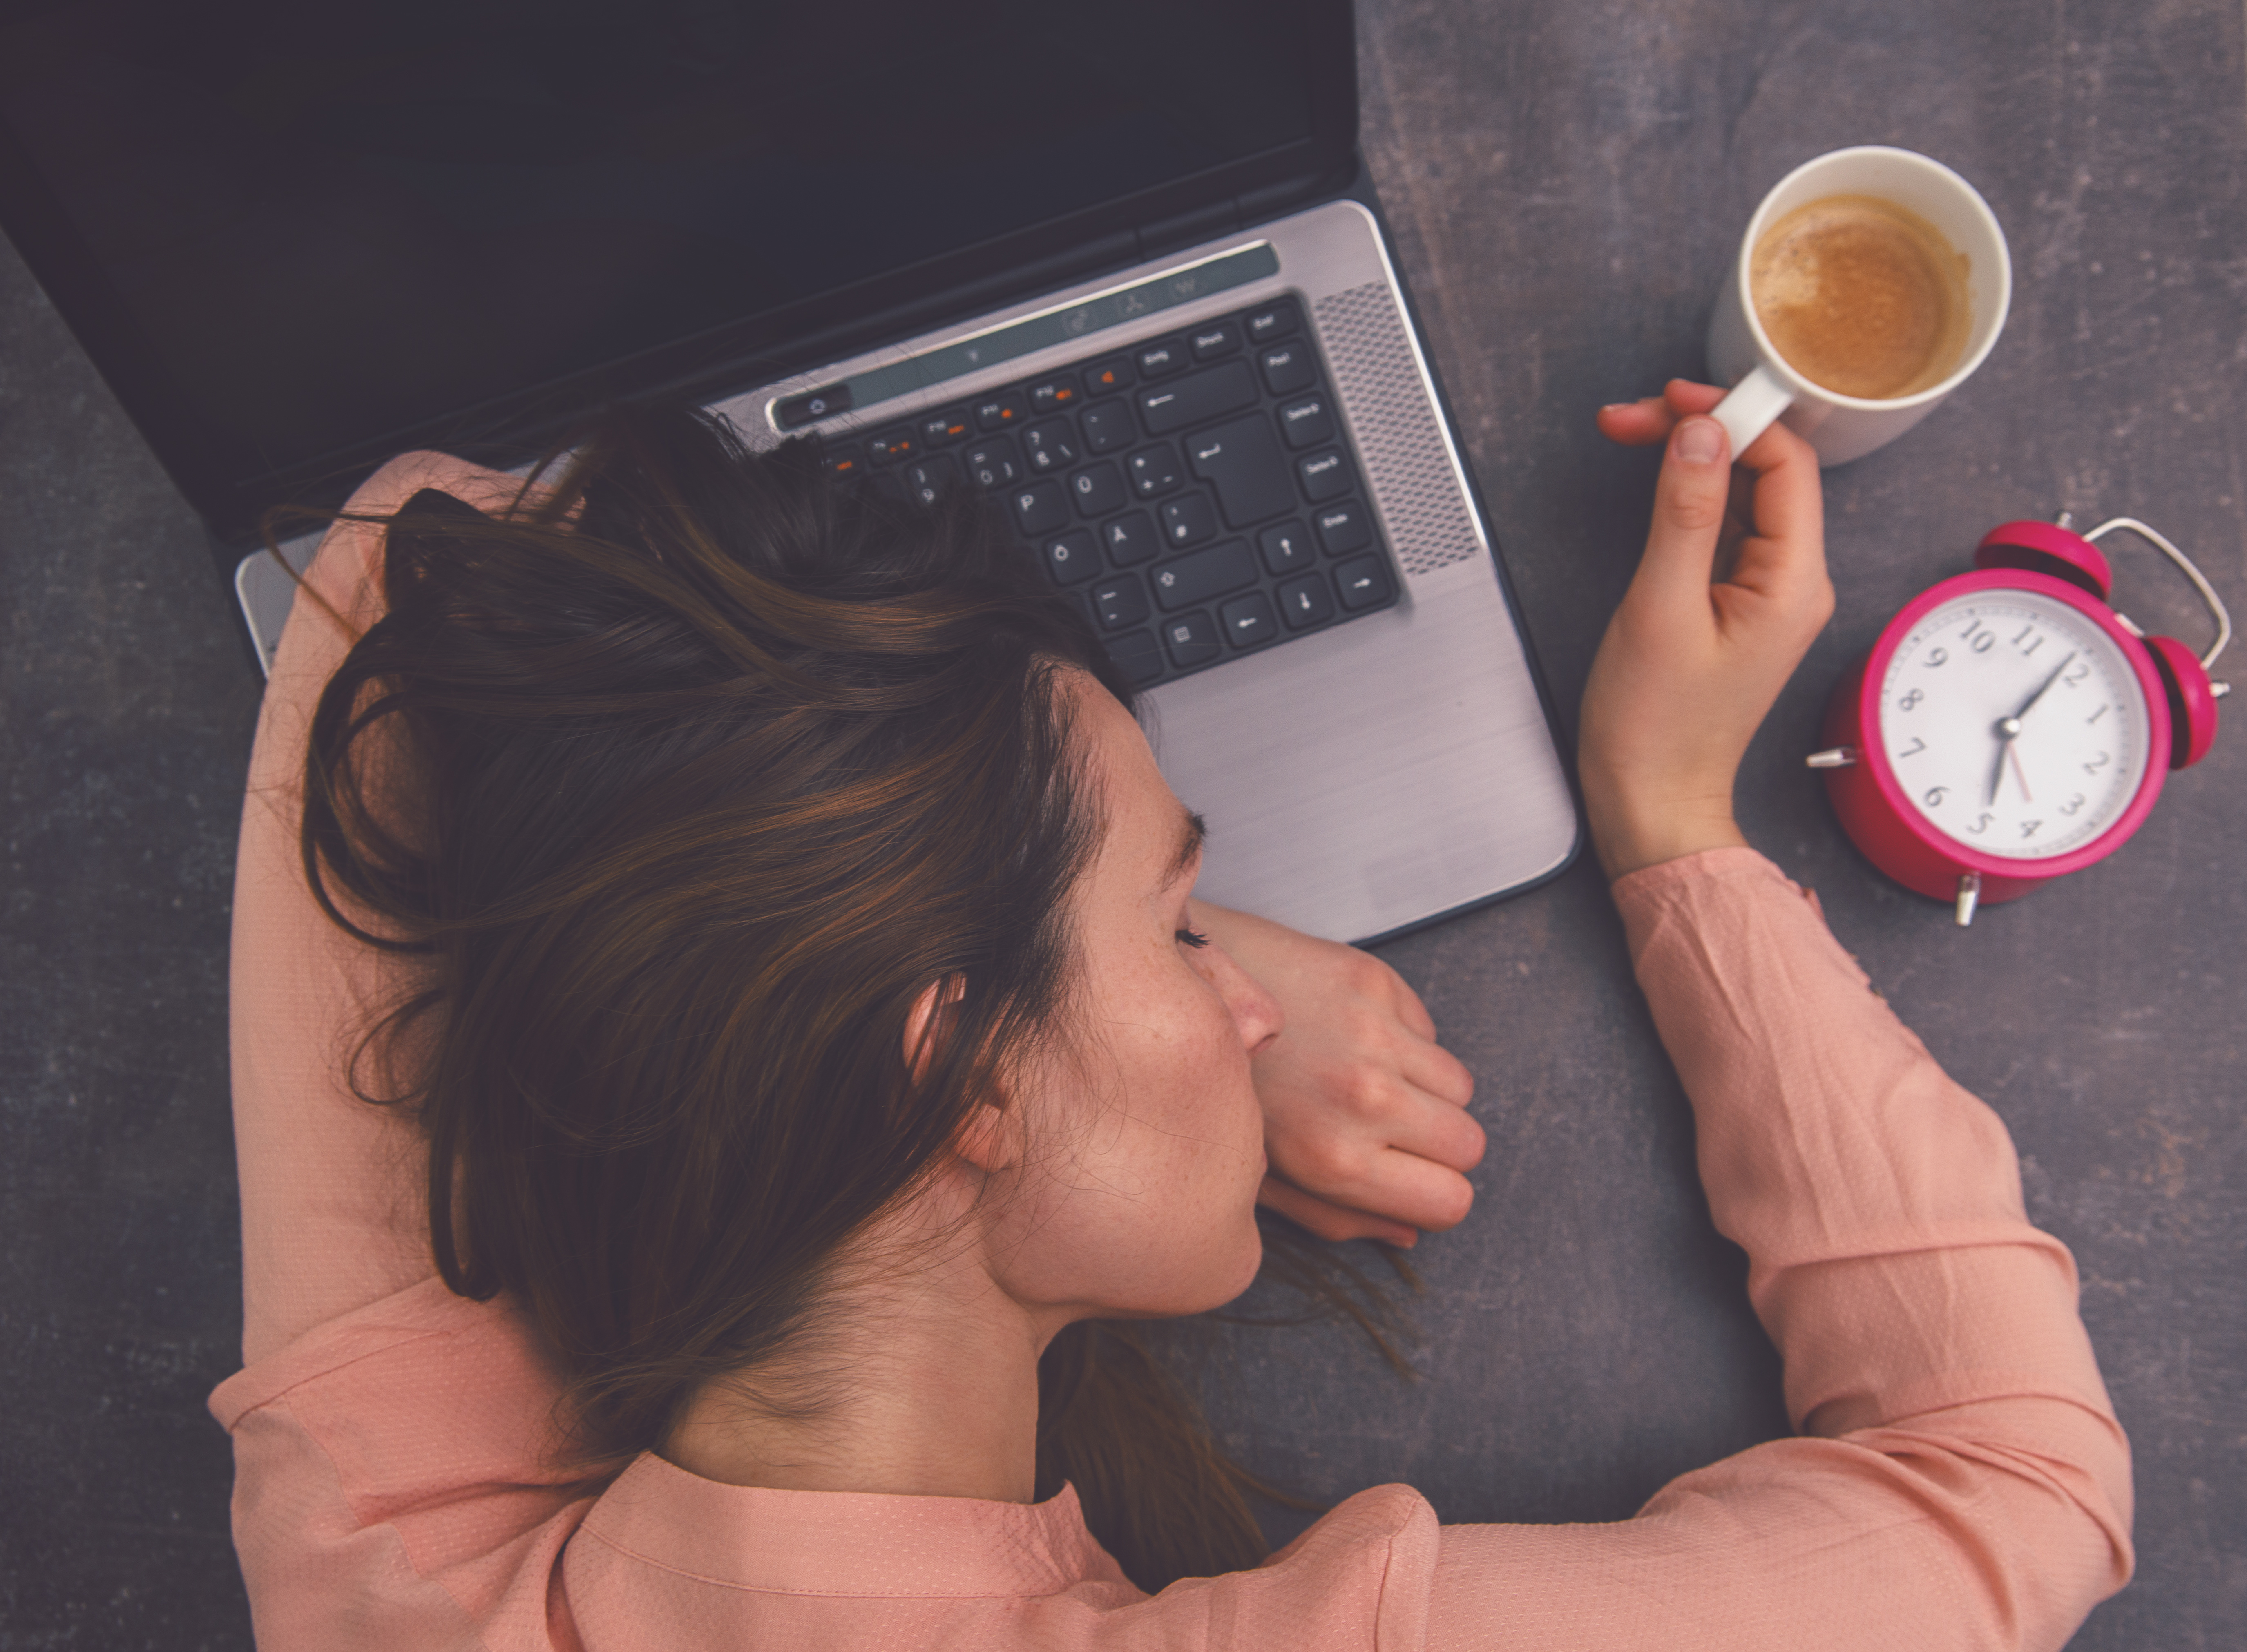 A woman lays her head on her laptop while loosely grasping the handle of a coffee mug on her desk.